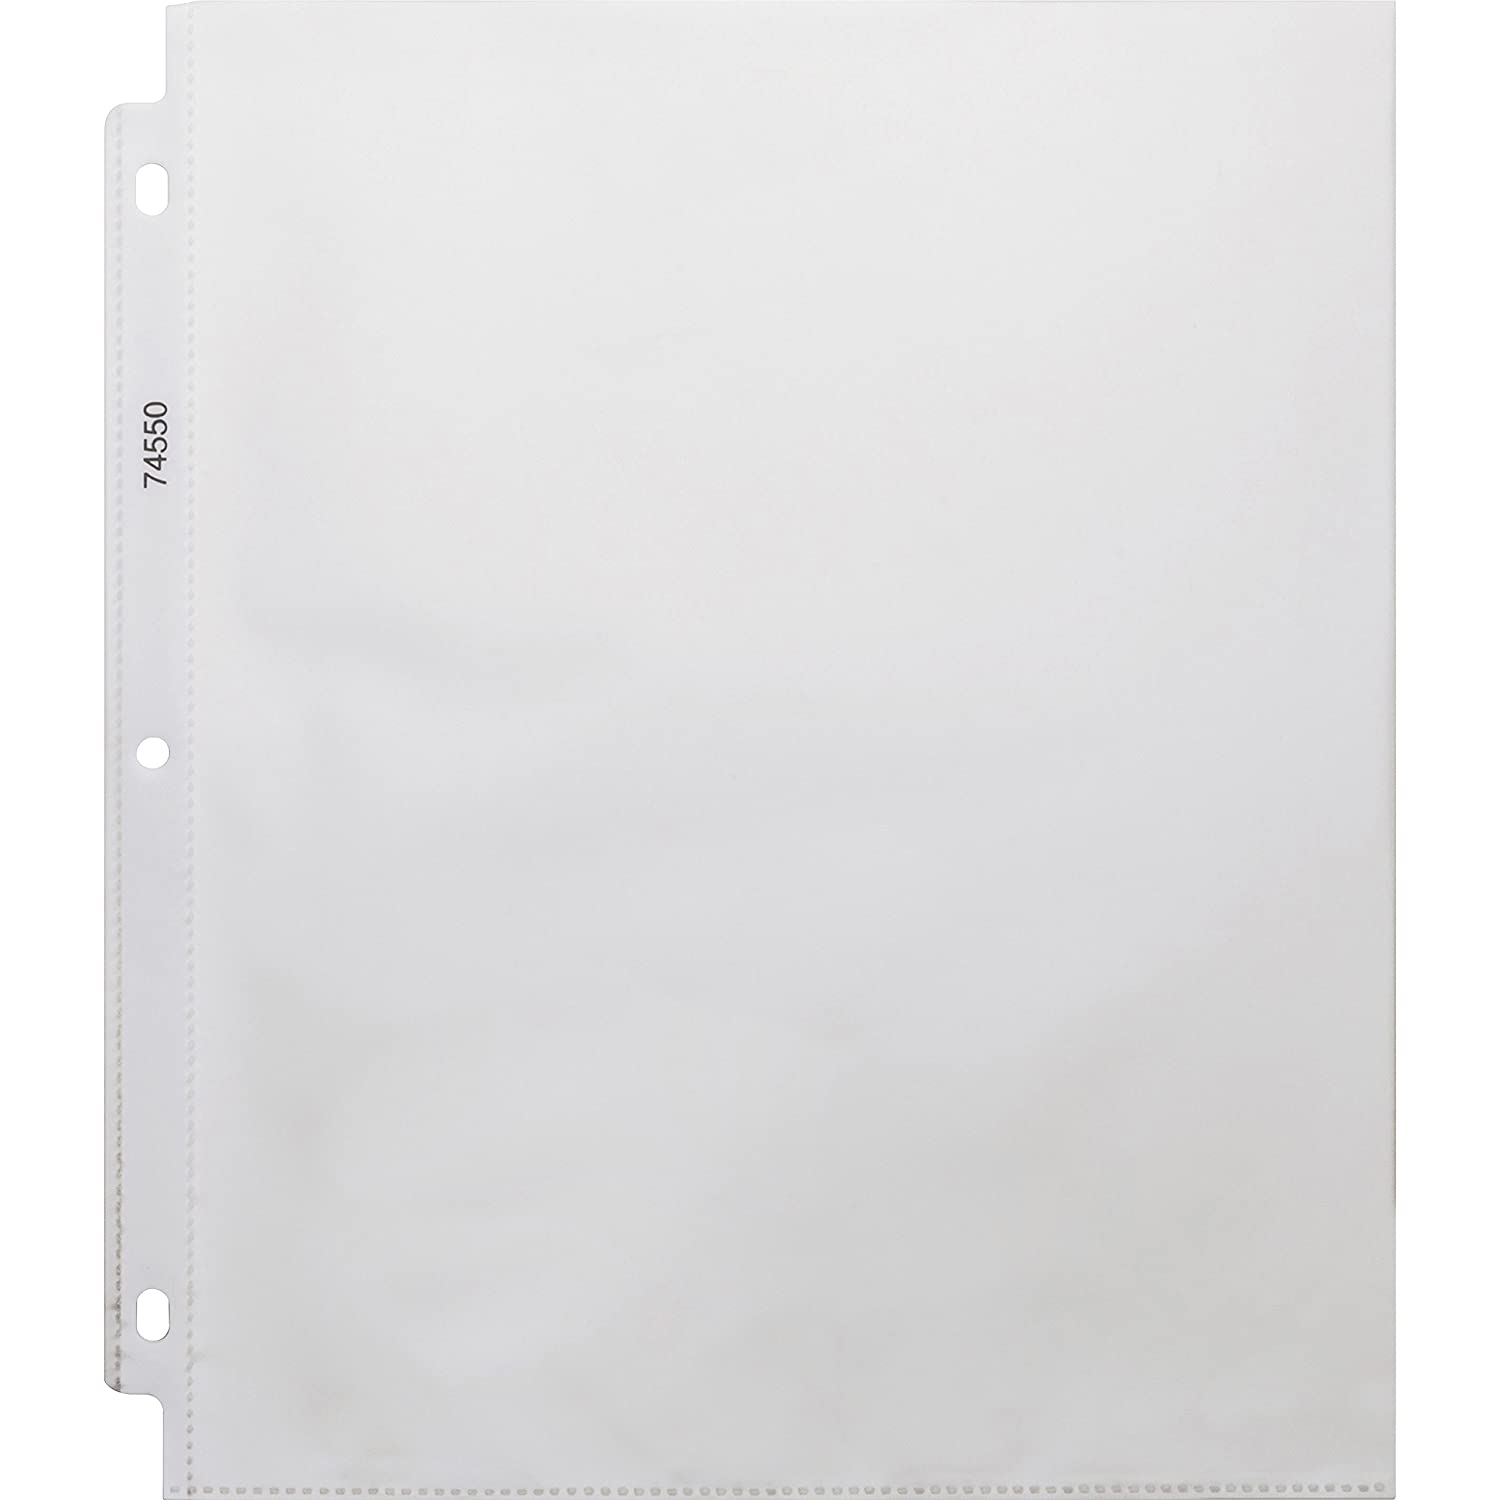 Business Source 74550 Sheet Protectors, Top Load, 3.2 mil, 11x8-1/2, 100/BX, Clear 11x8-1/2 Business Source.74550